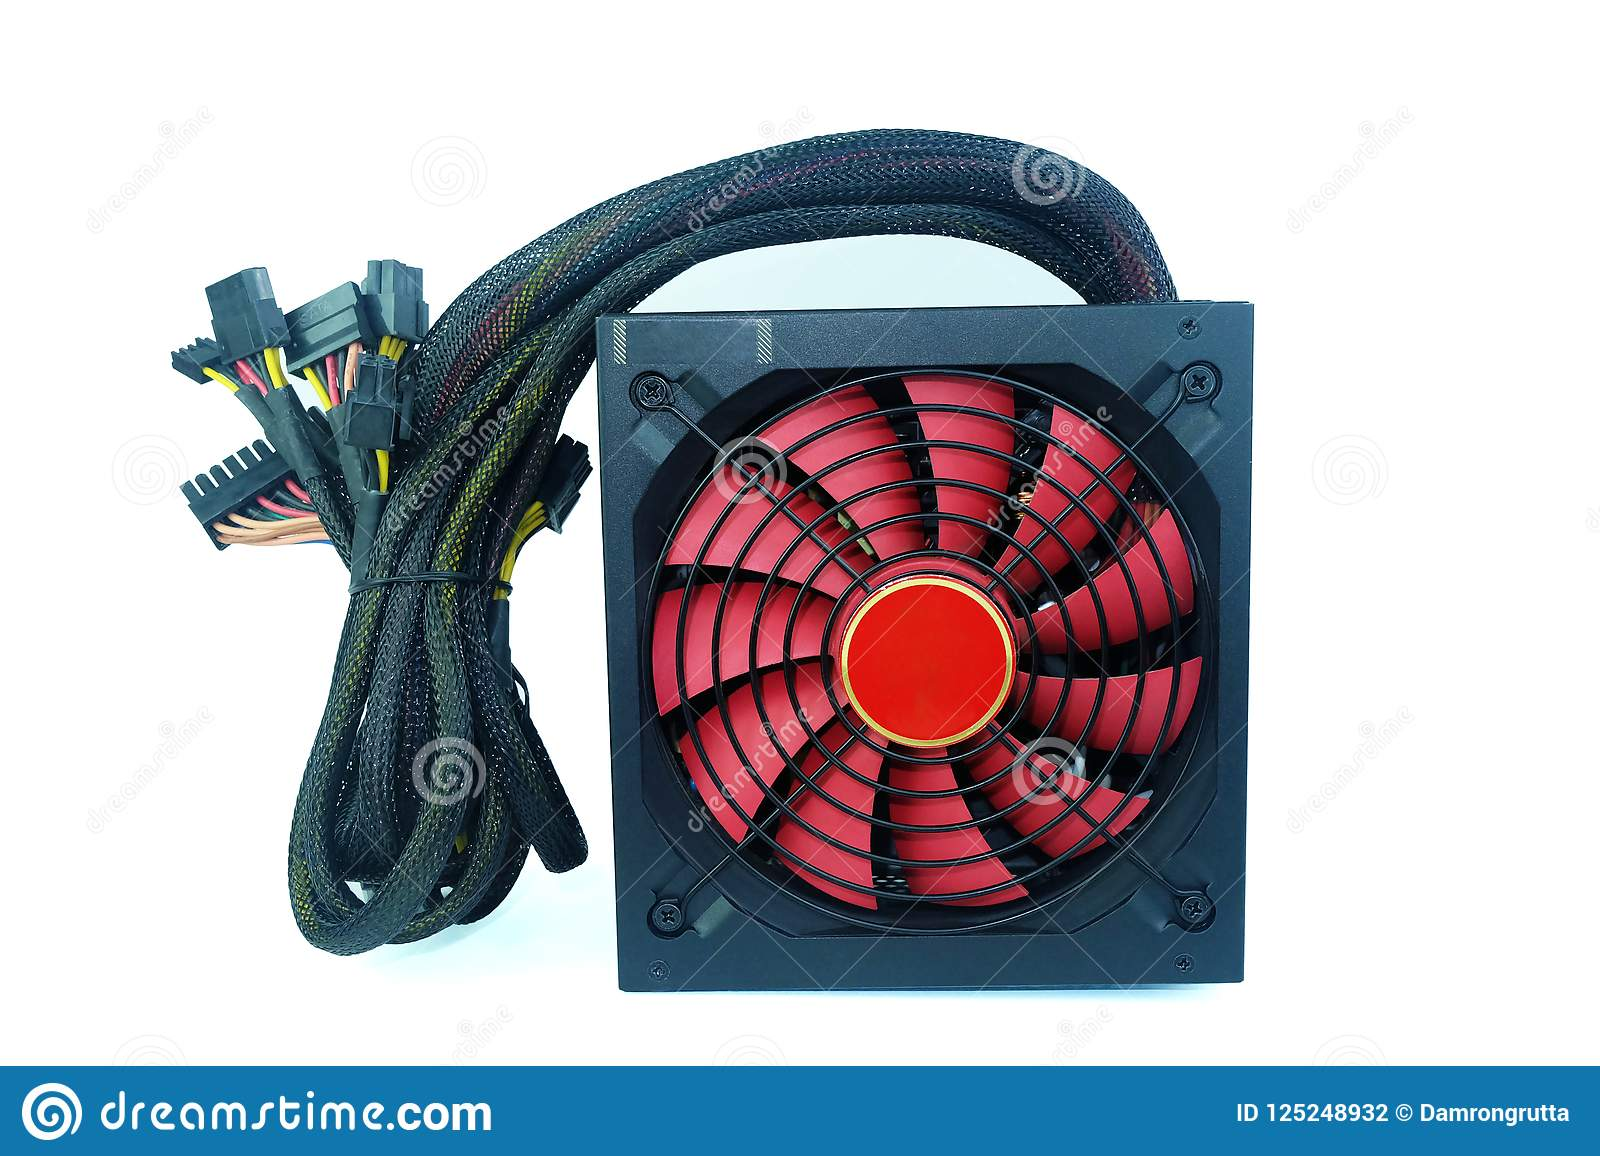 hight resolution of pc fan wiring red black white wiring diagram view pc fan wiring red black white